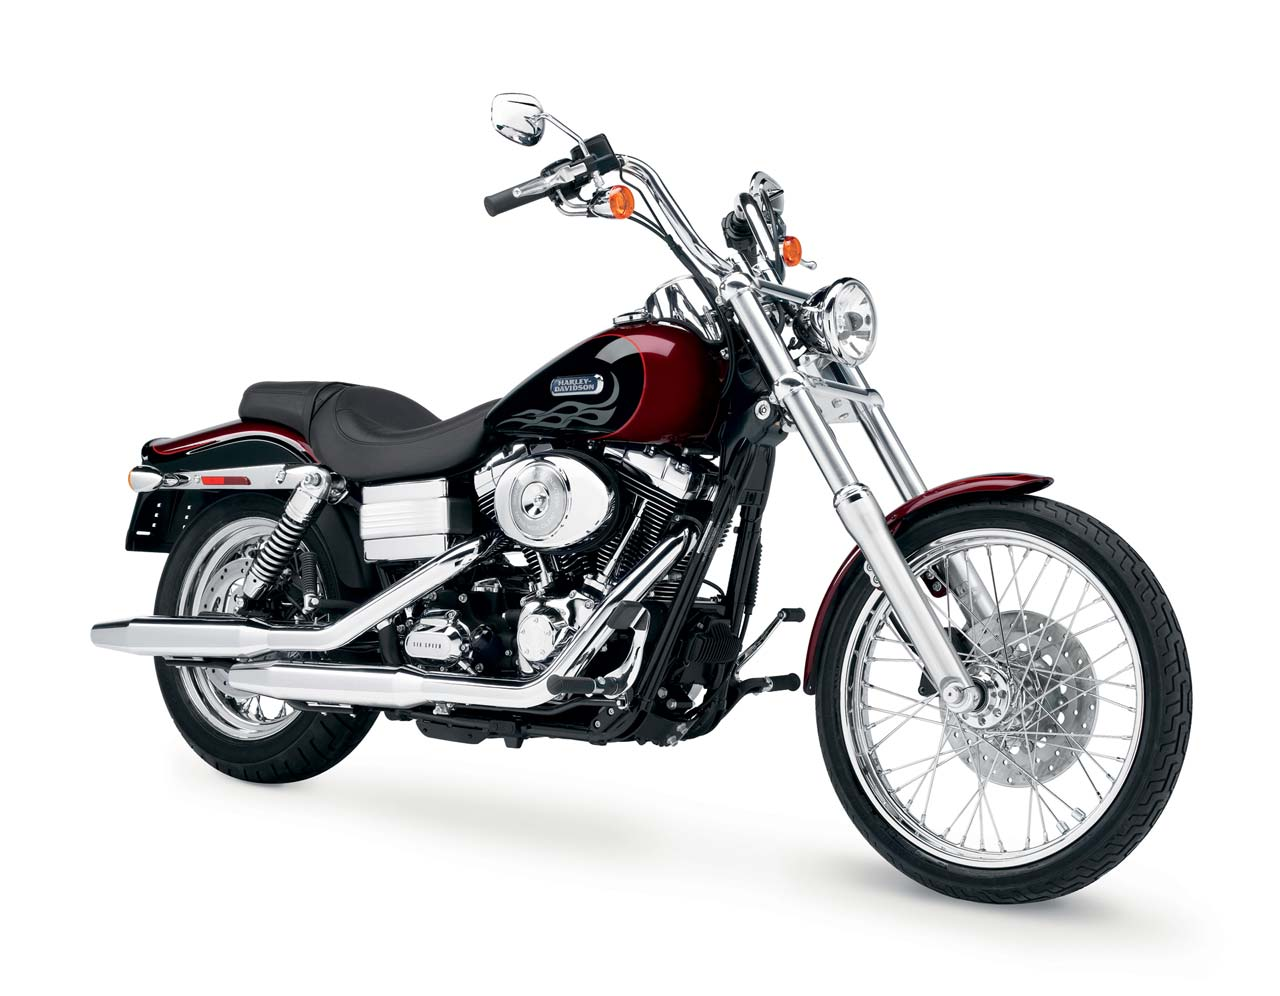 Harley-davidson fxdwgi dyna wide glide. Photos and ...